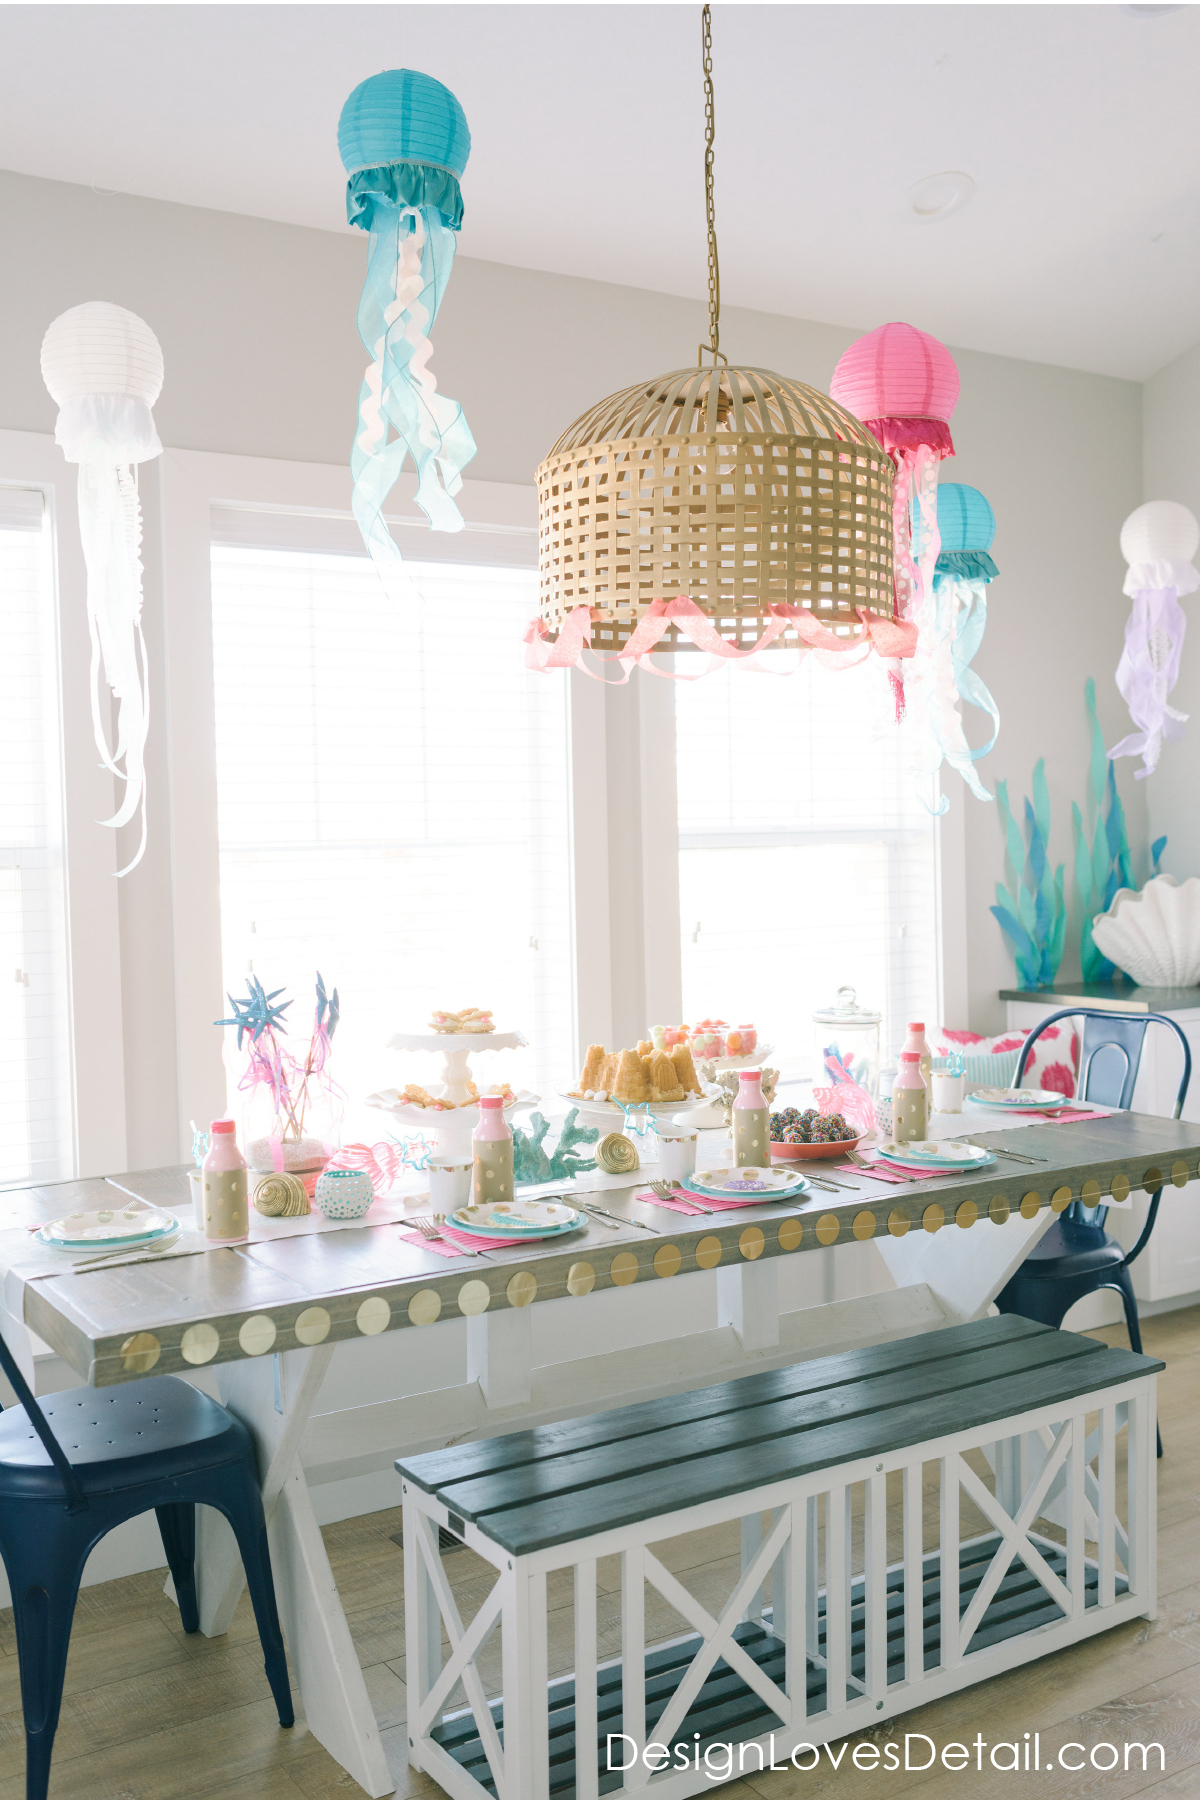 Design Loves Detail does the most amazing parties! I'm obsessed with this Mermaid theme and those cute Jellyfish Chinese Lanterns! Such a great DIY!